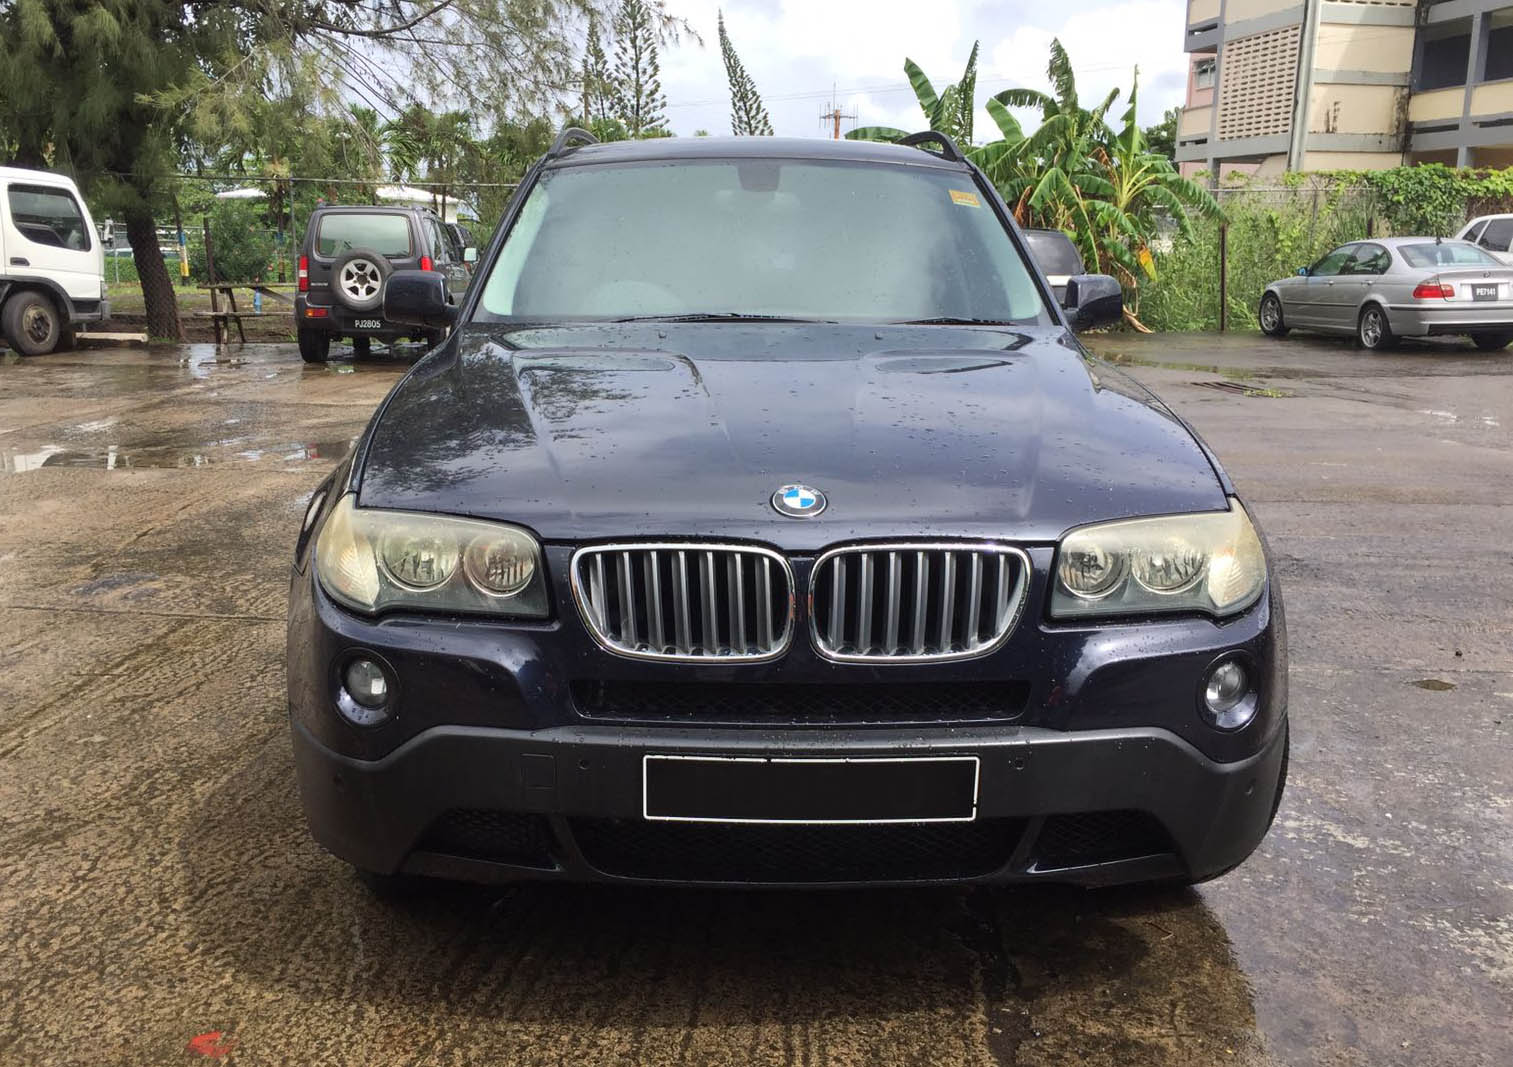 2007 bmw x3 autolist st lucia cars suvs boats bikes trucks buses pickups for sale and rent. Black Bedroom Furniture Sets. Home Design Ideas